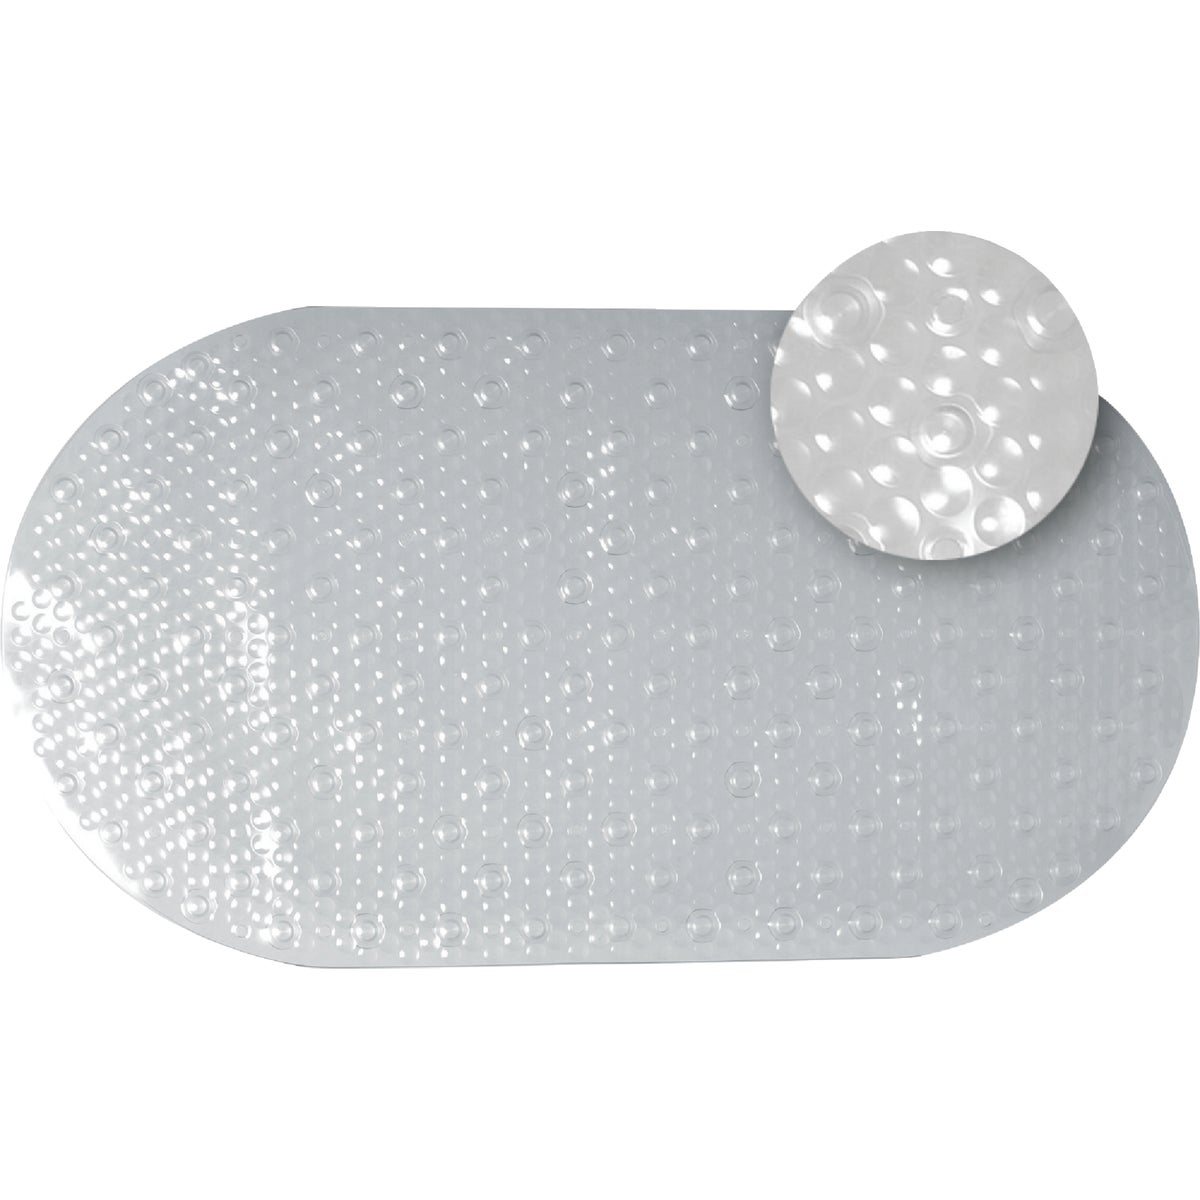 CLEAR BUBBLE BATH MAT - 80KK04 by Zenith Prod Corp